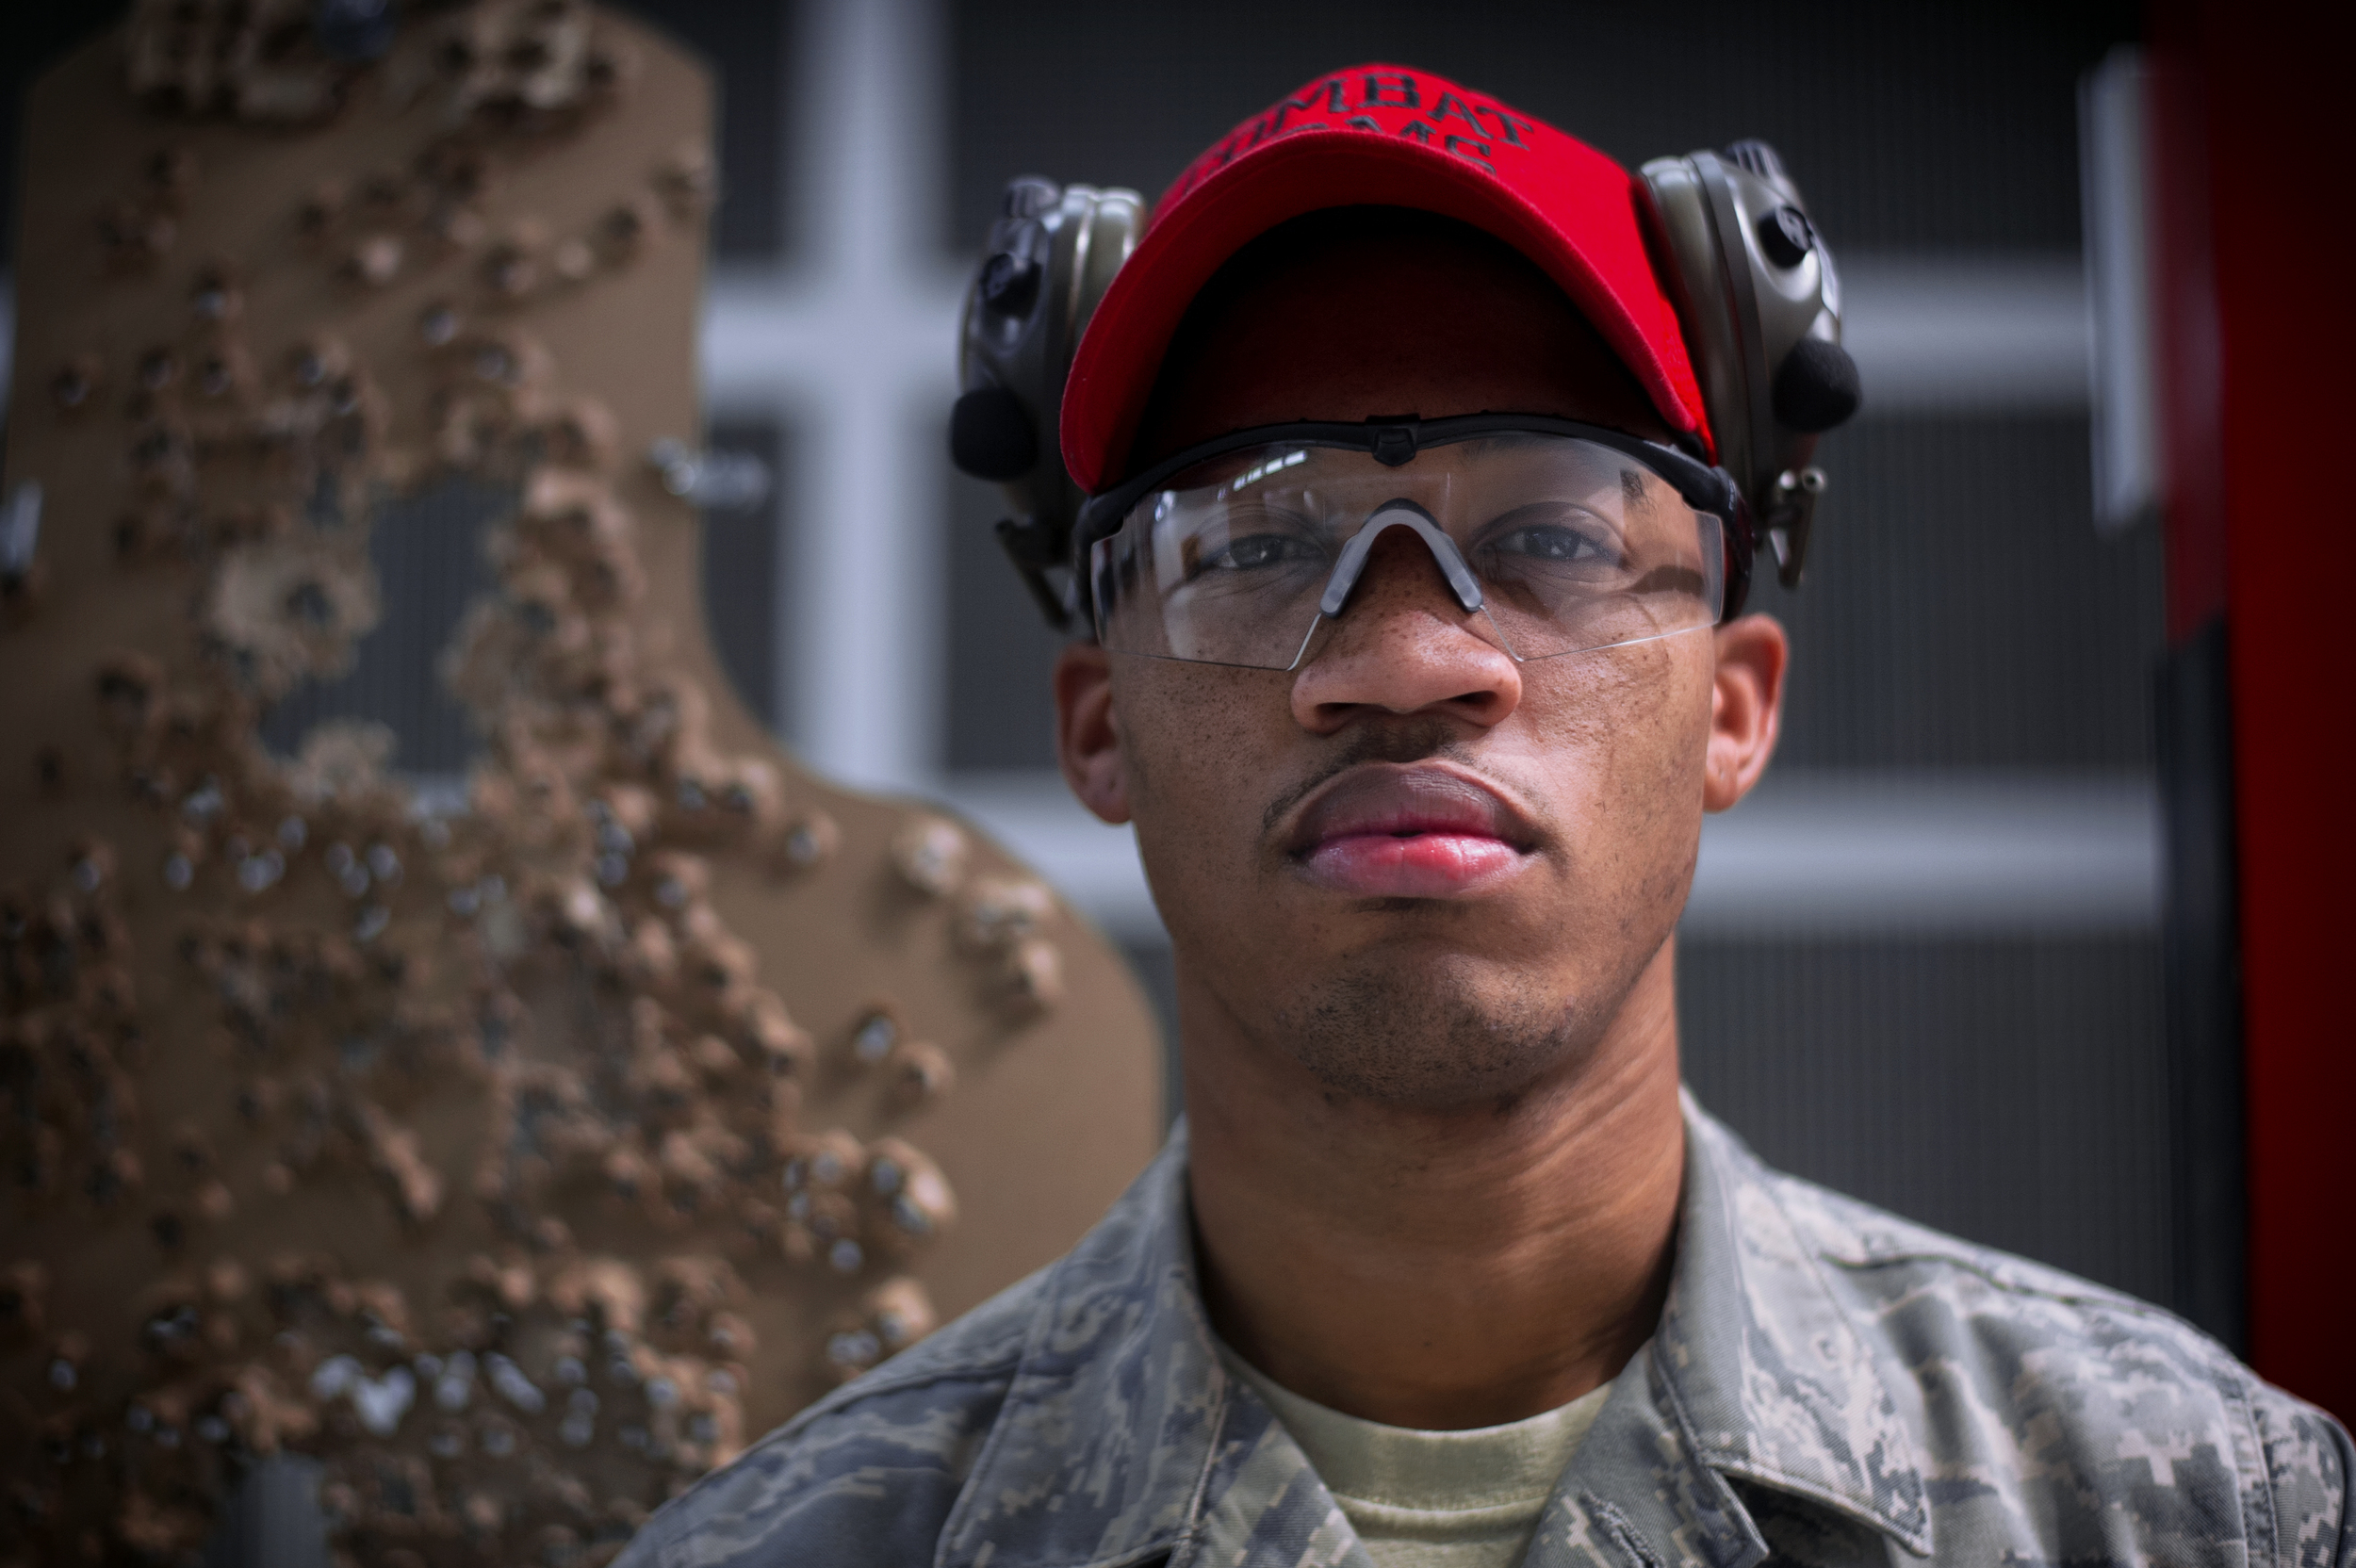 Senior Airman Carlton Dixon, 374th Security Forces Squadron combat arms instructor, poses for a photo at Yokota Air Base, Japan, Oct. 8, 2015. Combat arms training instructors provide ground weapons training and inspections for all Air Force personnel. (U.S. Air Force photo by Airman 1st Class Delano Scott/Released)